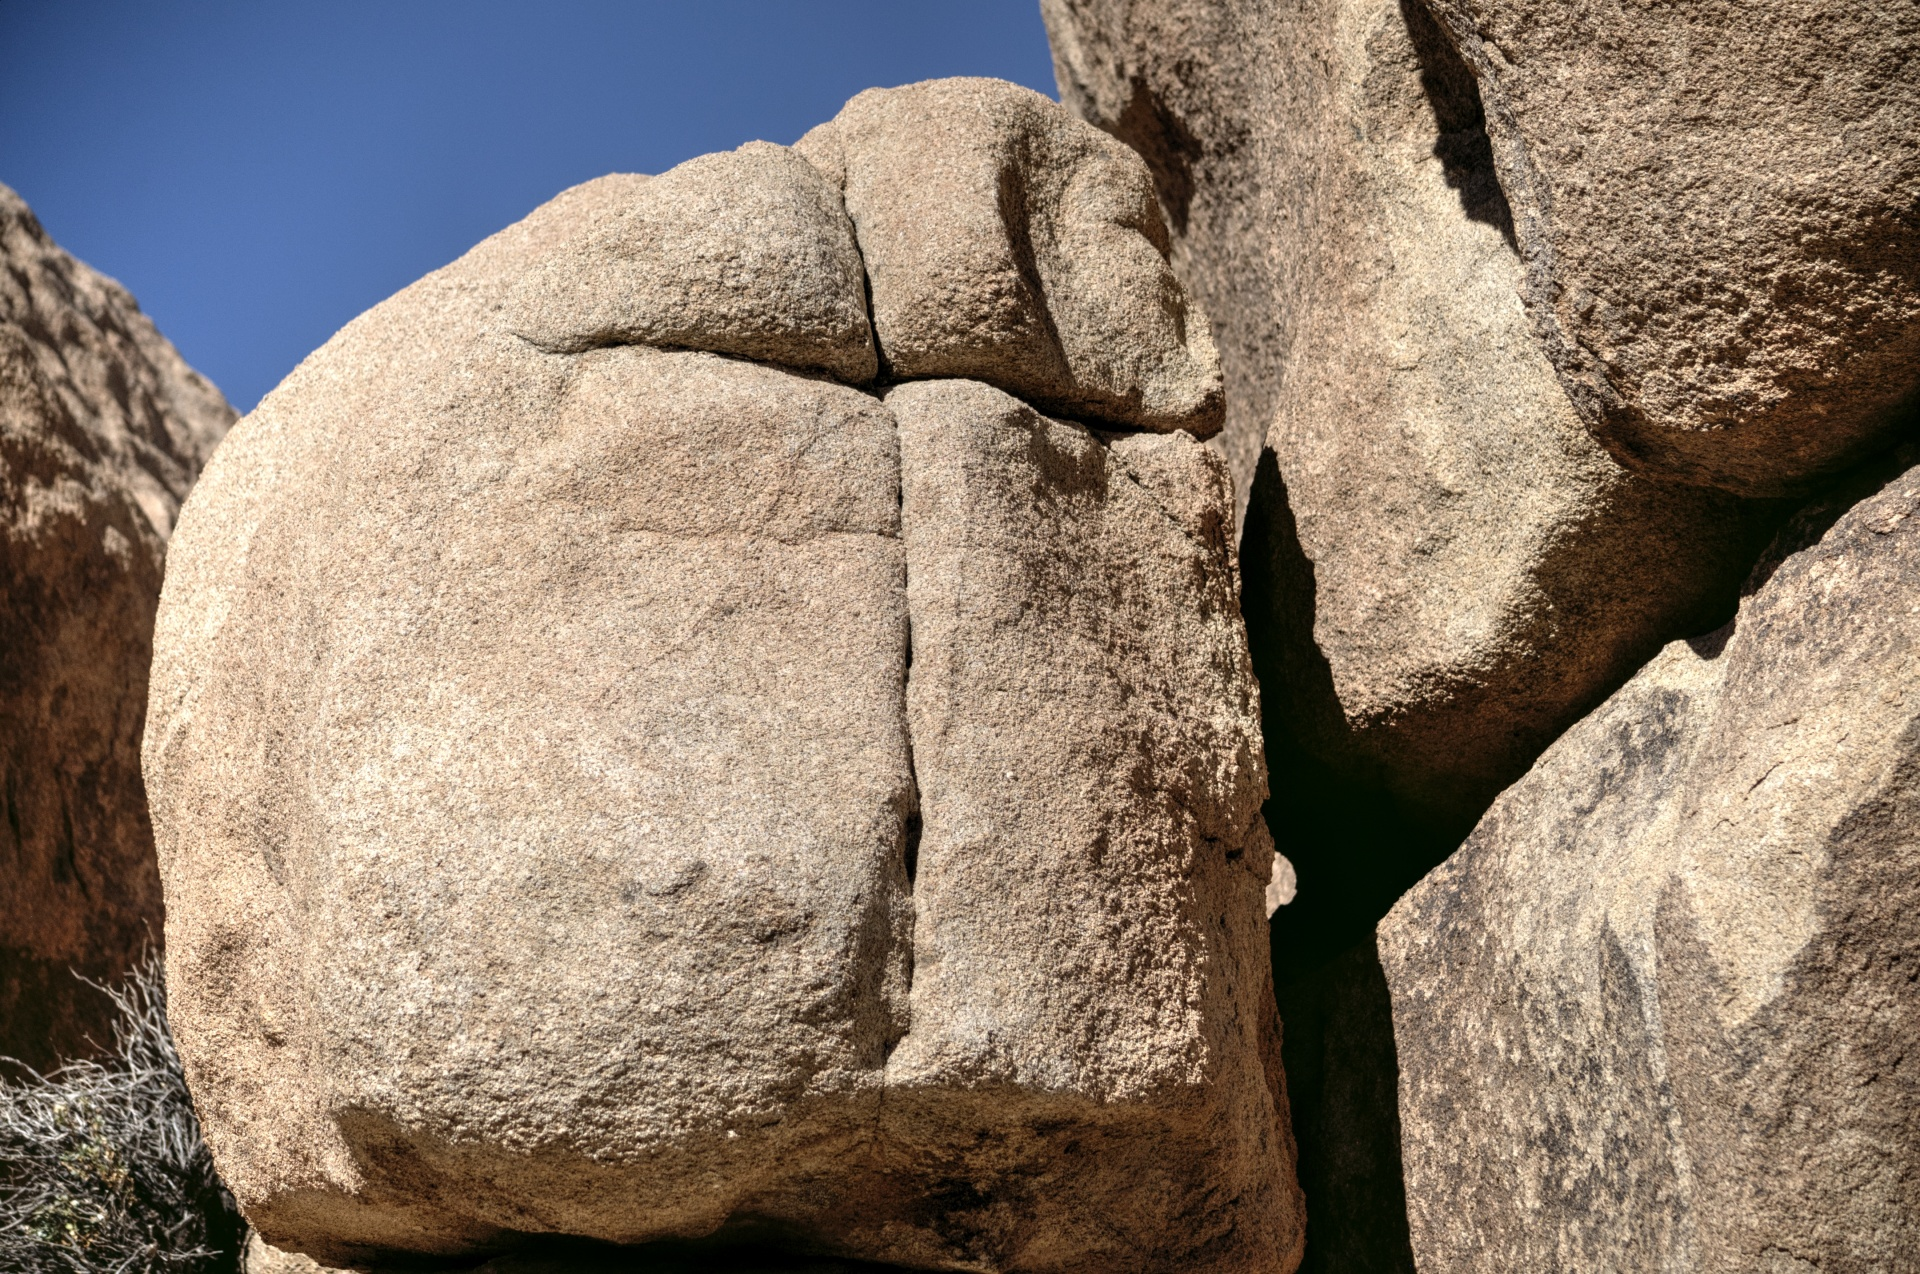 boulder-rock-background-1518197565g1A